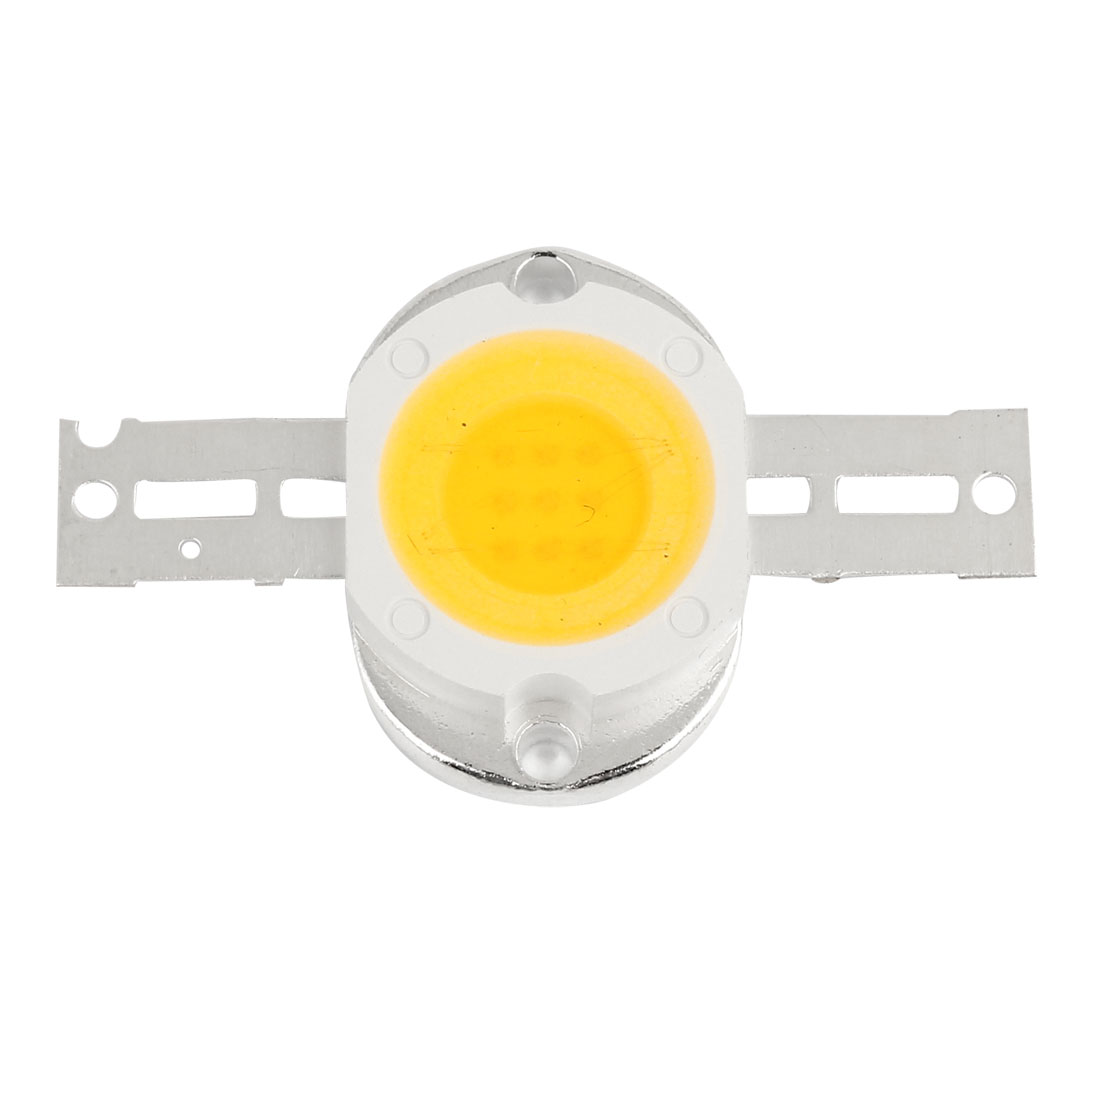 9-10V 10W Warm White Light High Power Lamp Bulb COB Spot LED SMD Chip